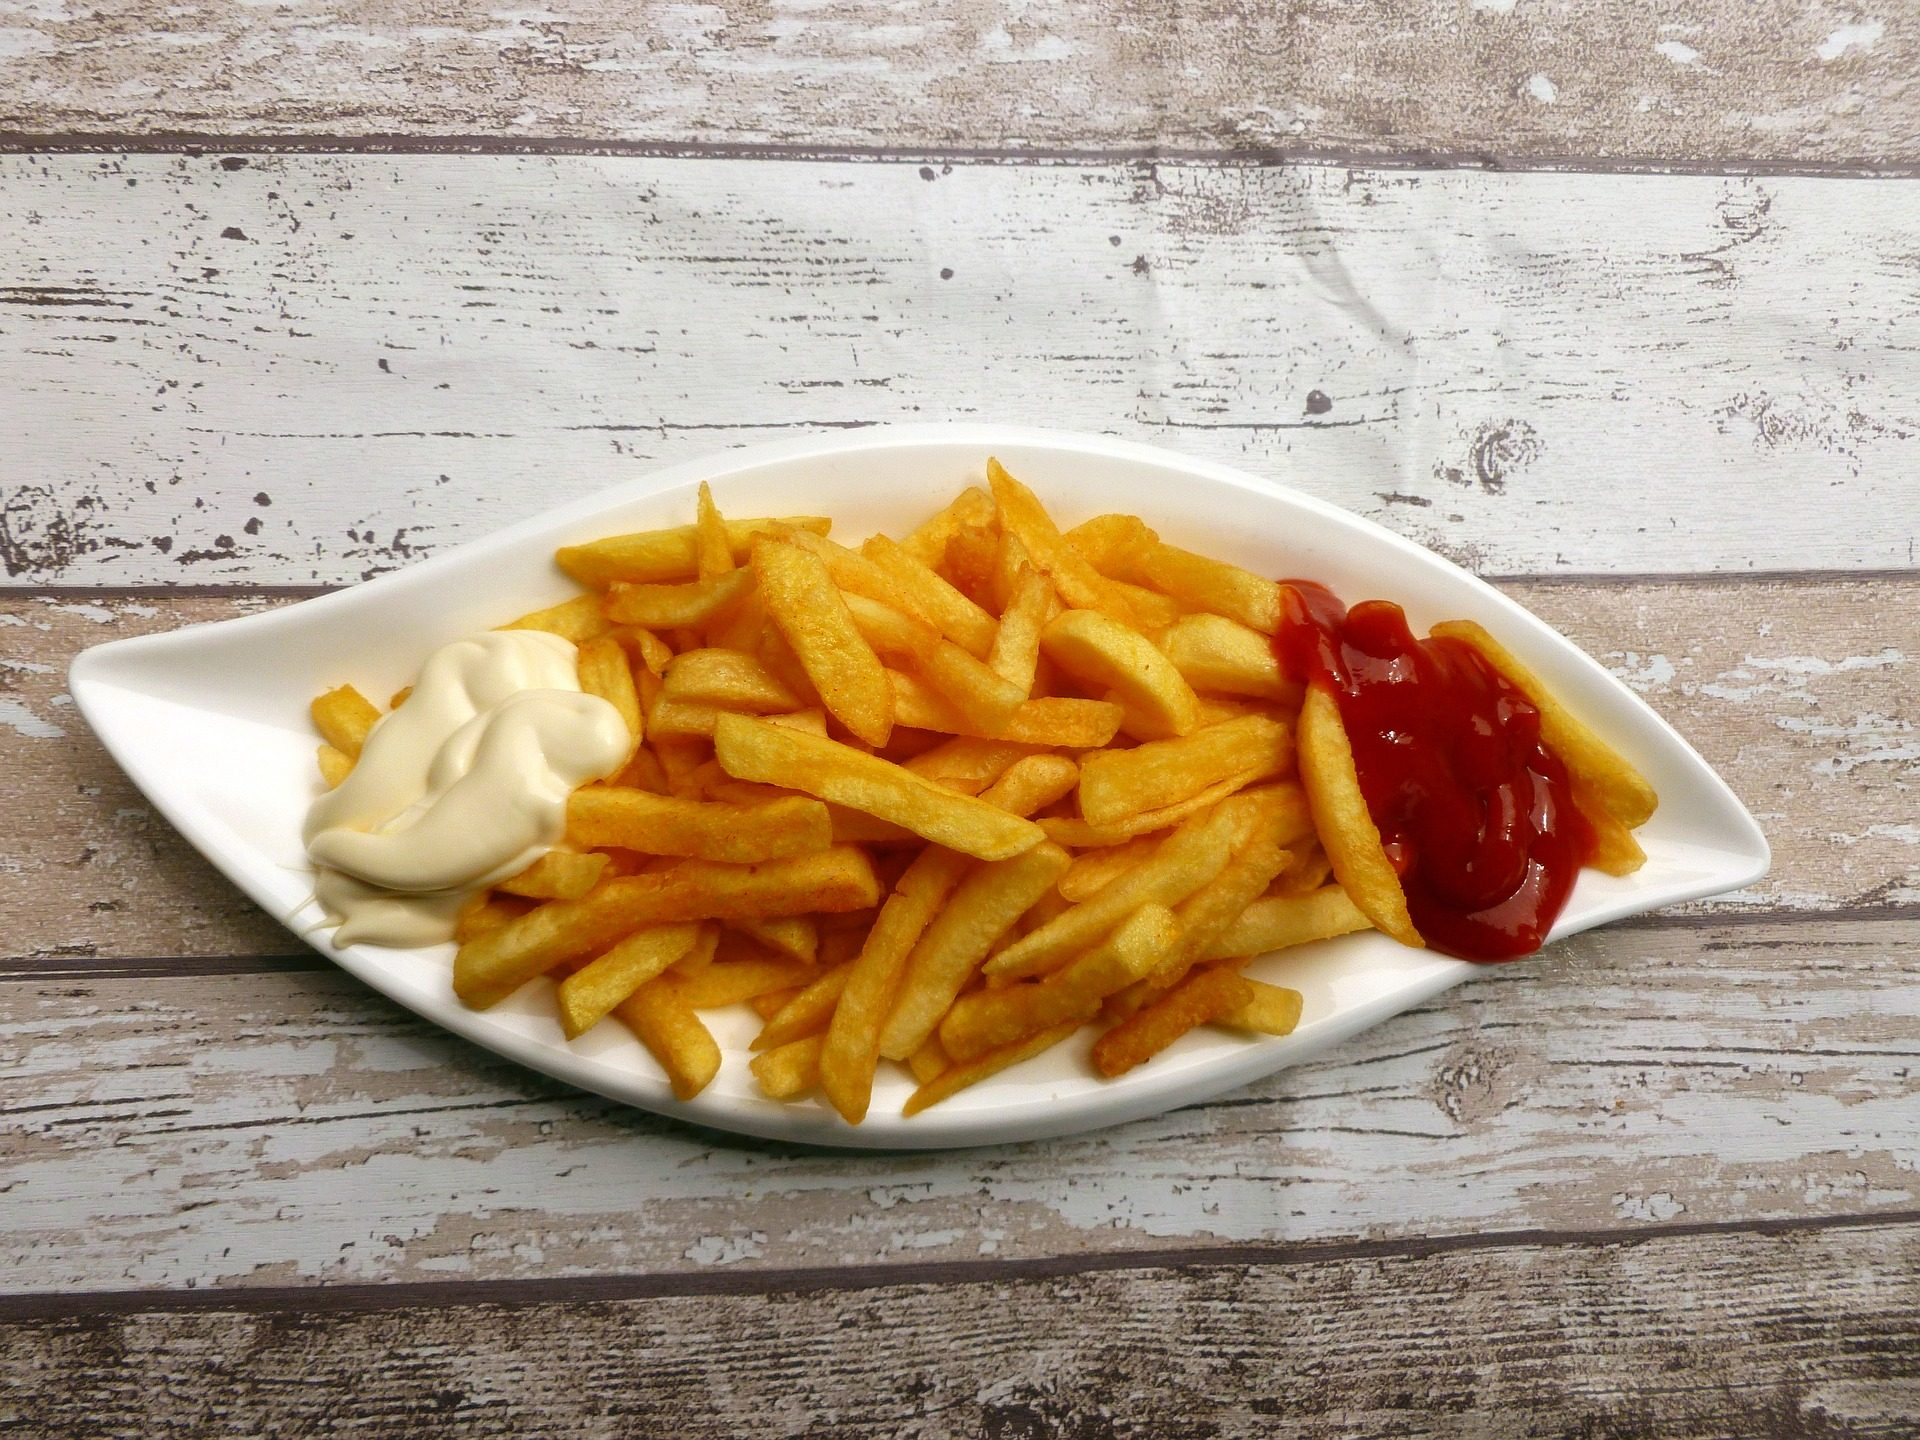 Heinz Inventing a Ketchup-Mayo Mixture? [watch+voting results]